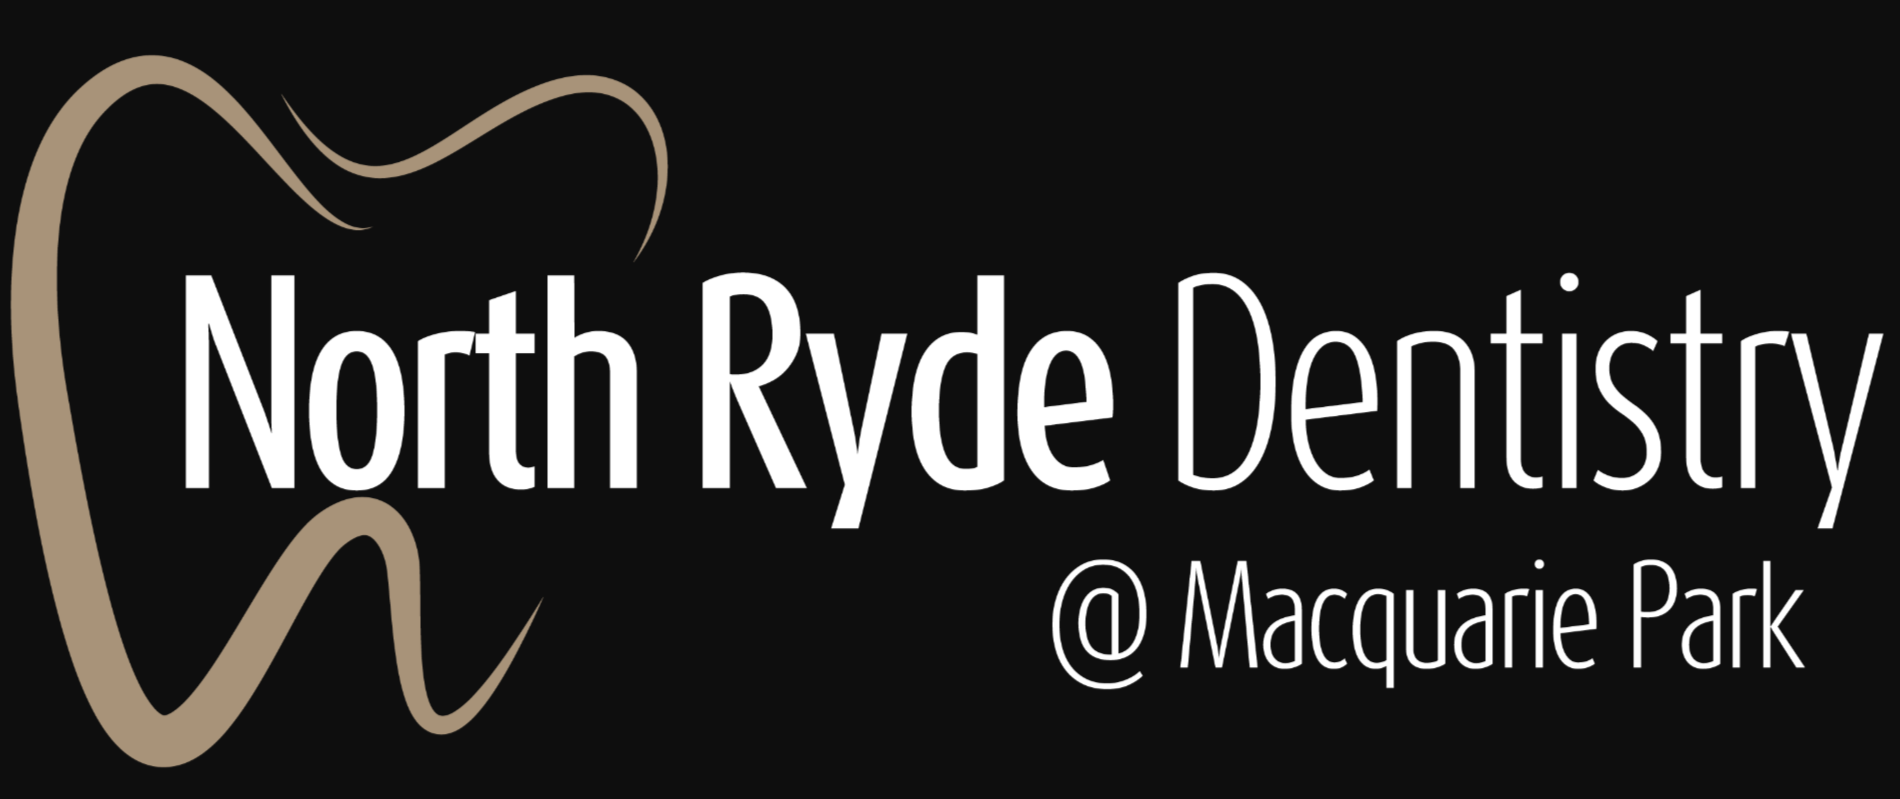 North Ryde Dentistry is the Preferred Dentist in Ryde, West Ryde, North Ryde, and Macquarie Park Area